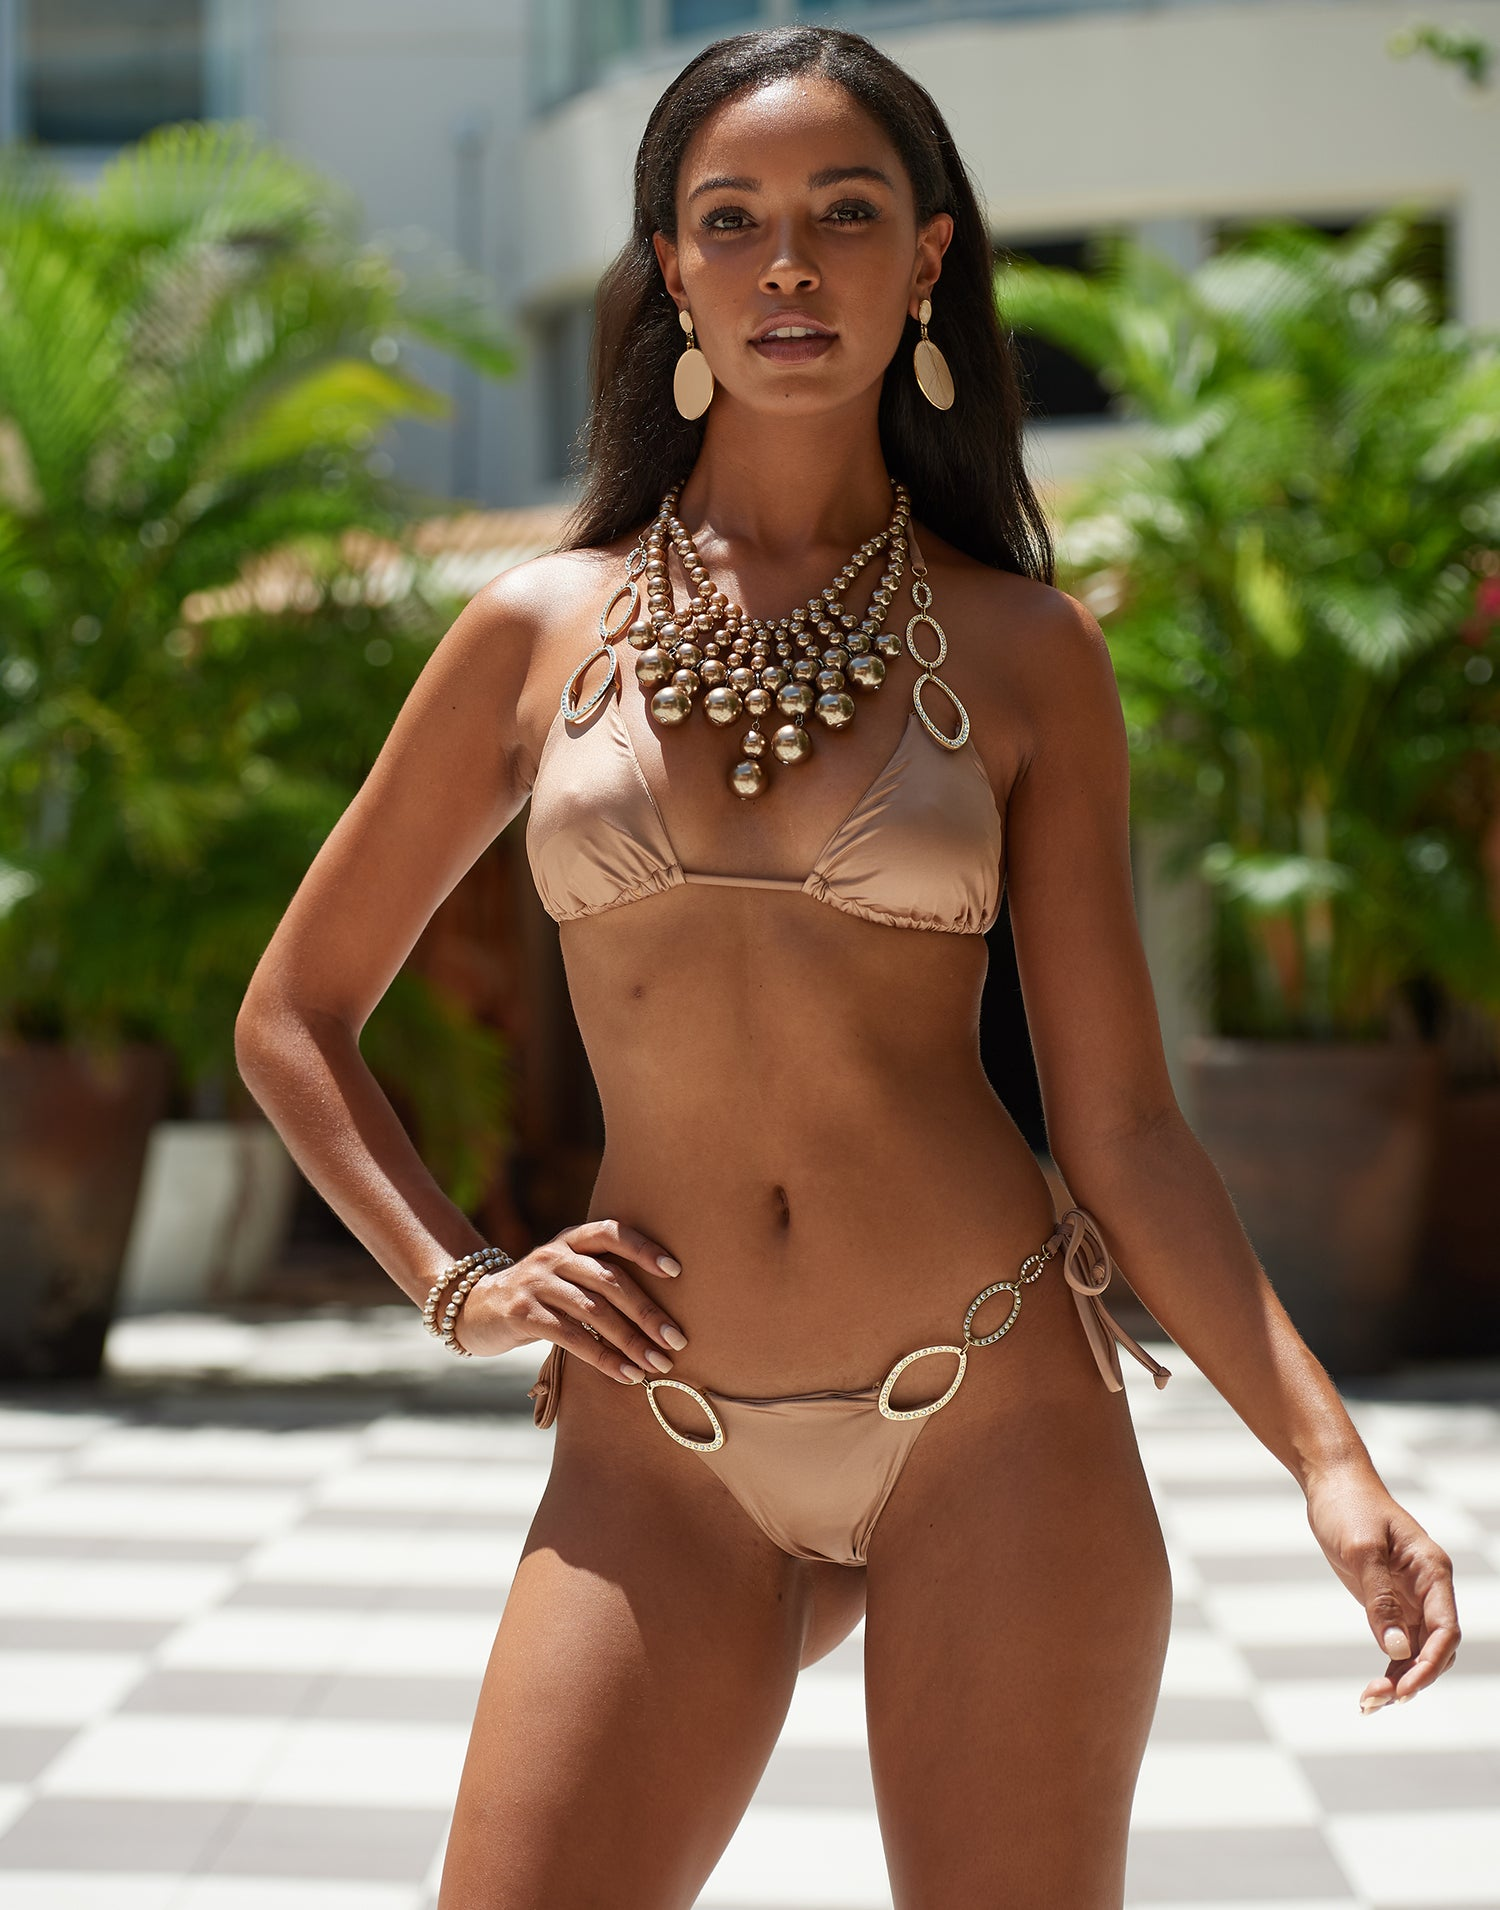 Paisley Triangle Bikini Top in Brown Sugar with Gold Hardware - Alternate Front View / Spring 2021 Miami Runway Show